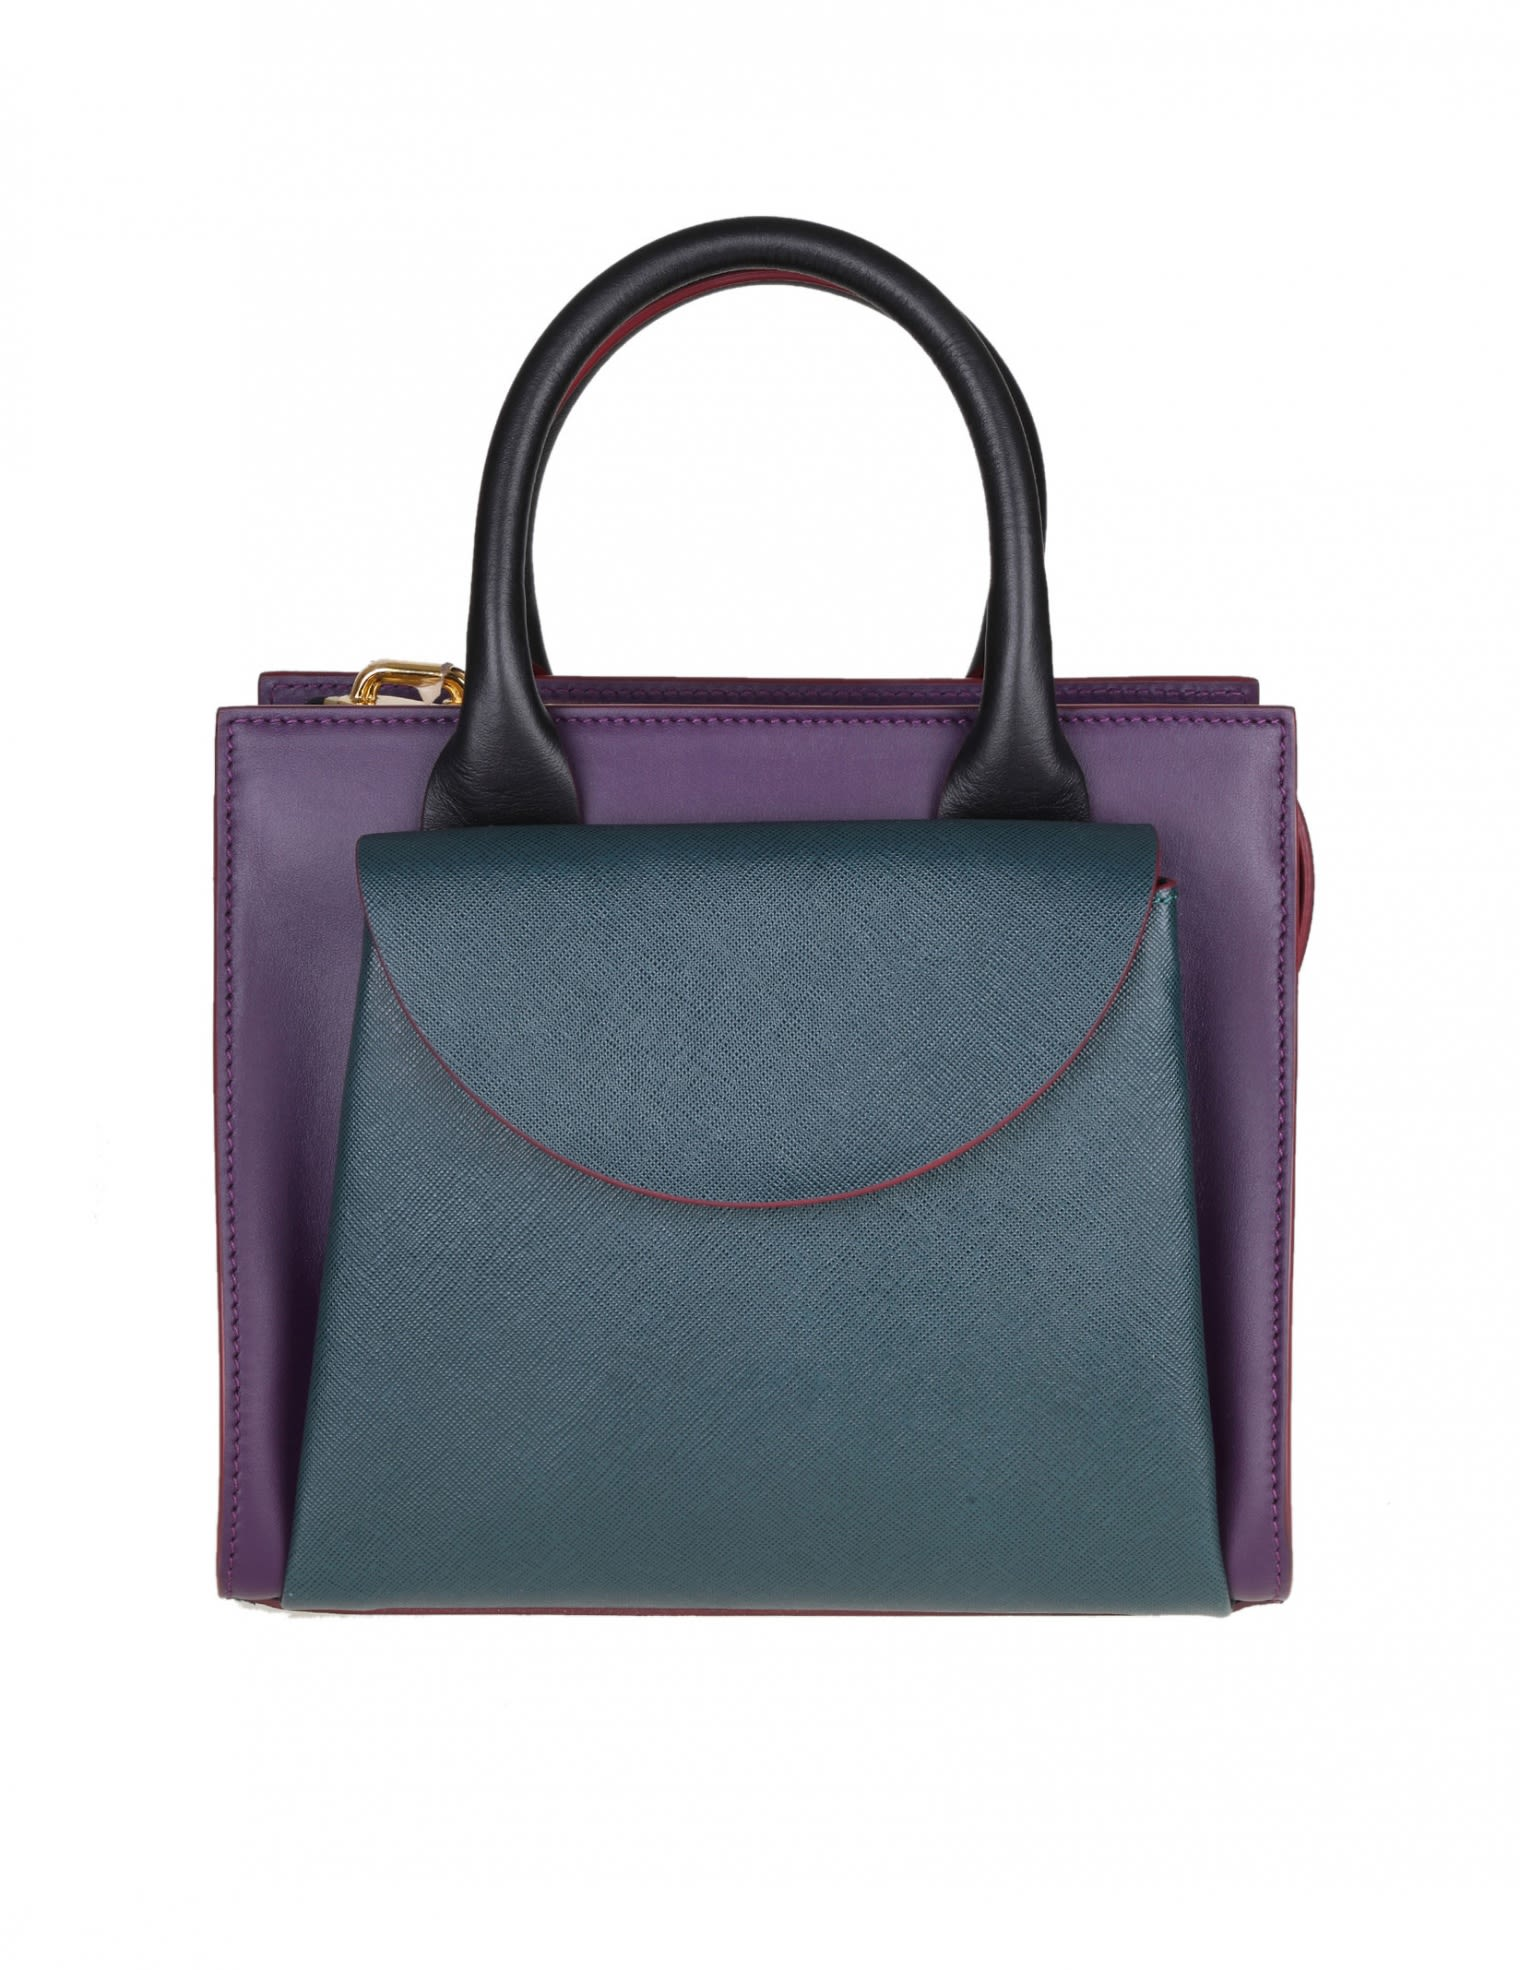 LOW HAND BAG IN VIOLET AND PETROLIO CALF